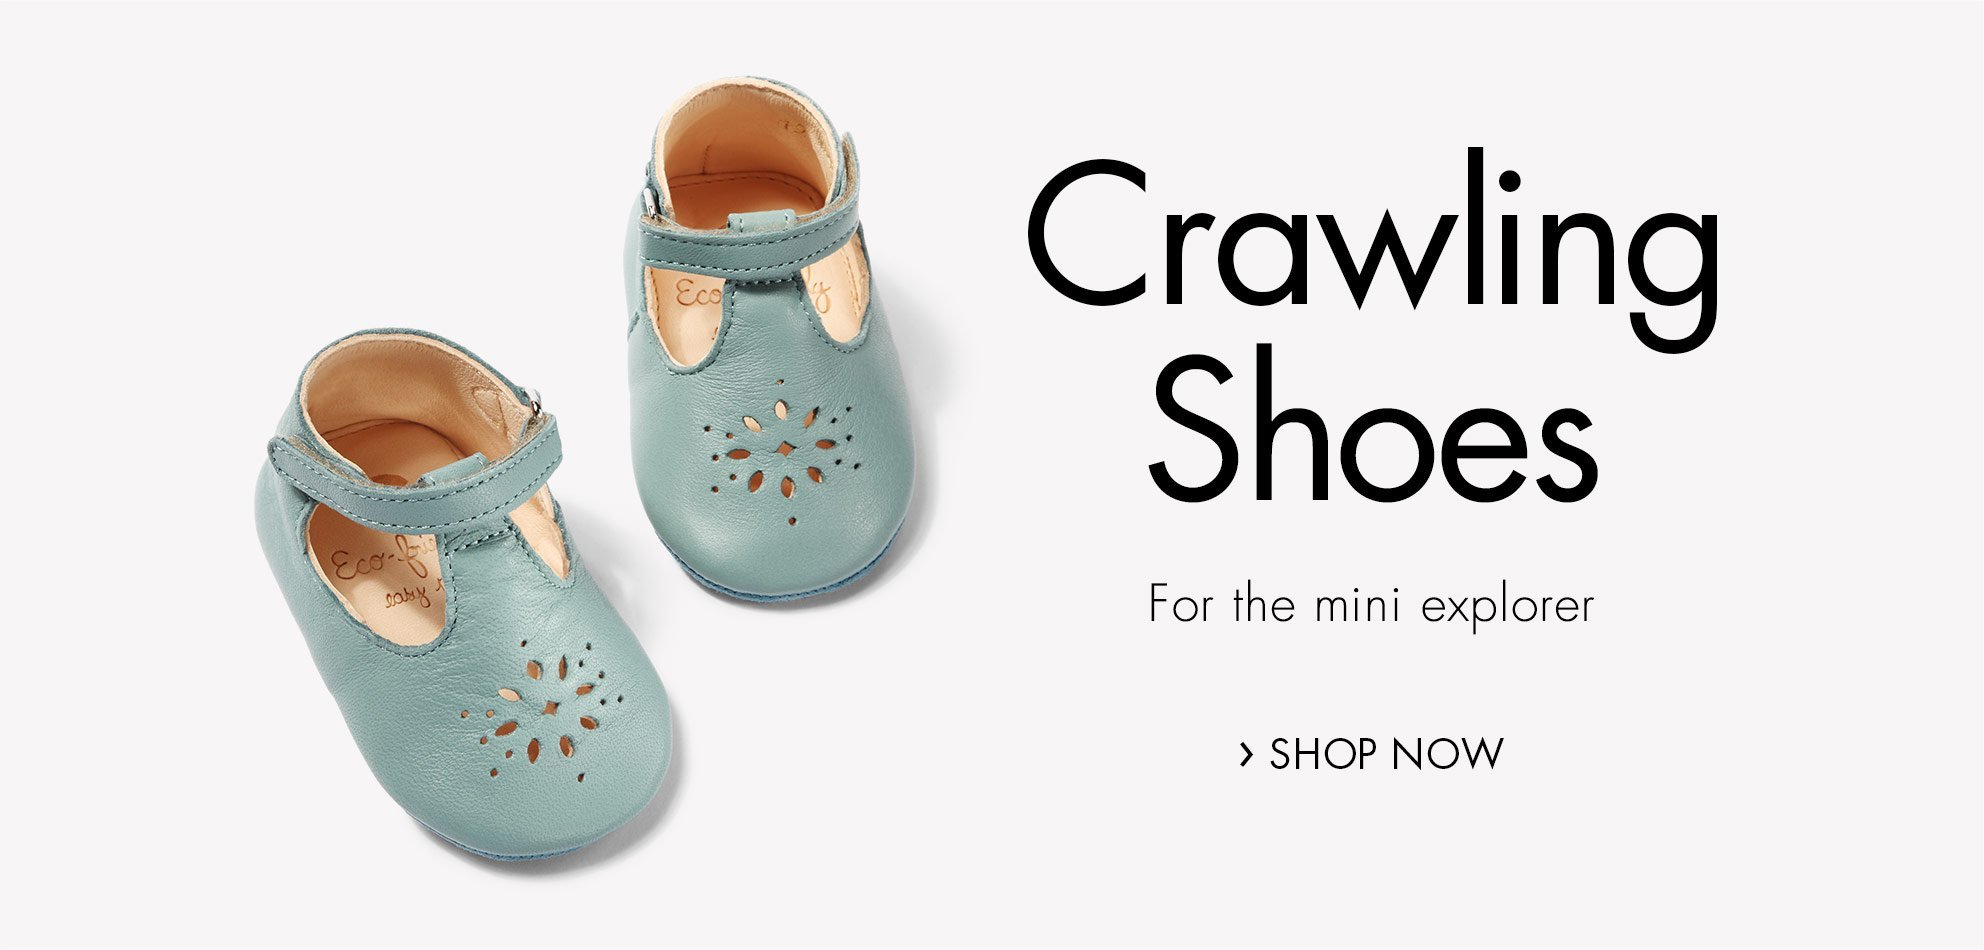 Crawling shoes